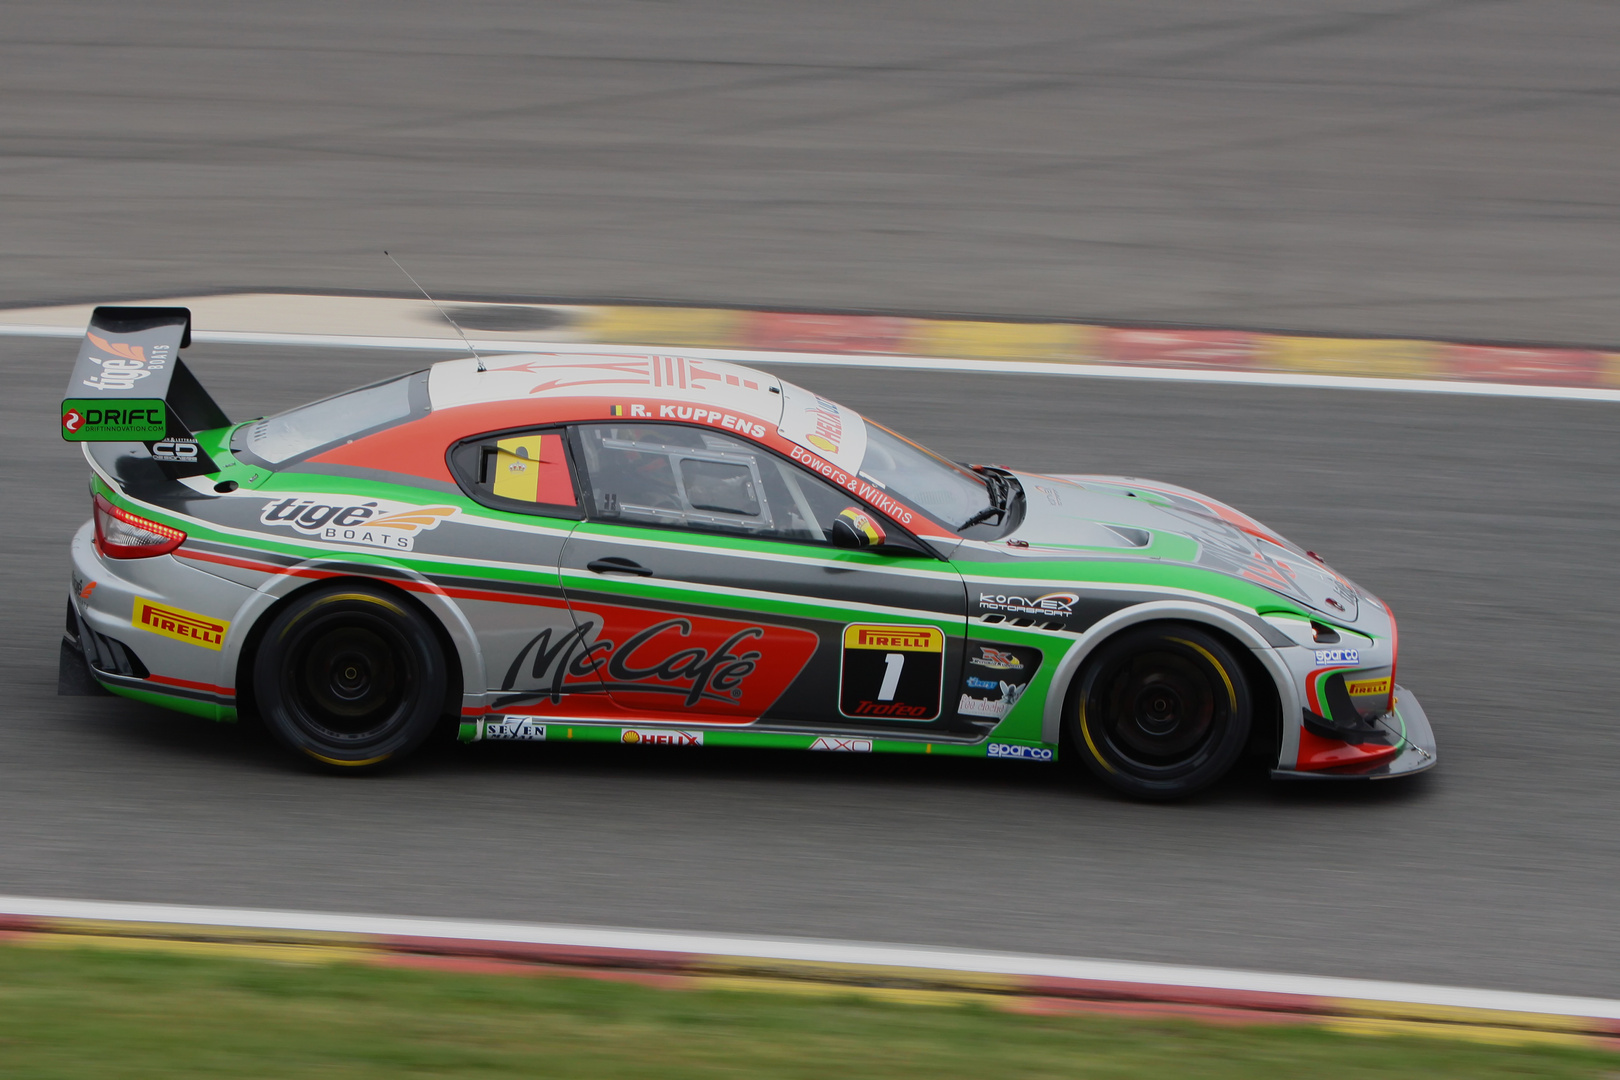 WEC 6 Hours of Spa-Francorchamps 2014 #11